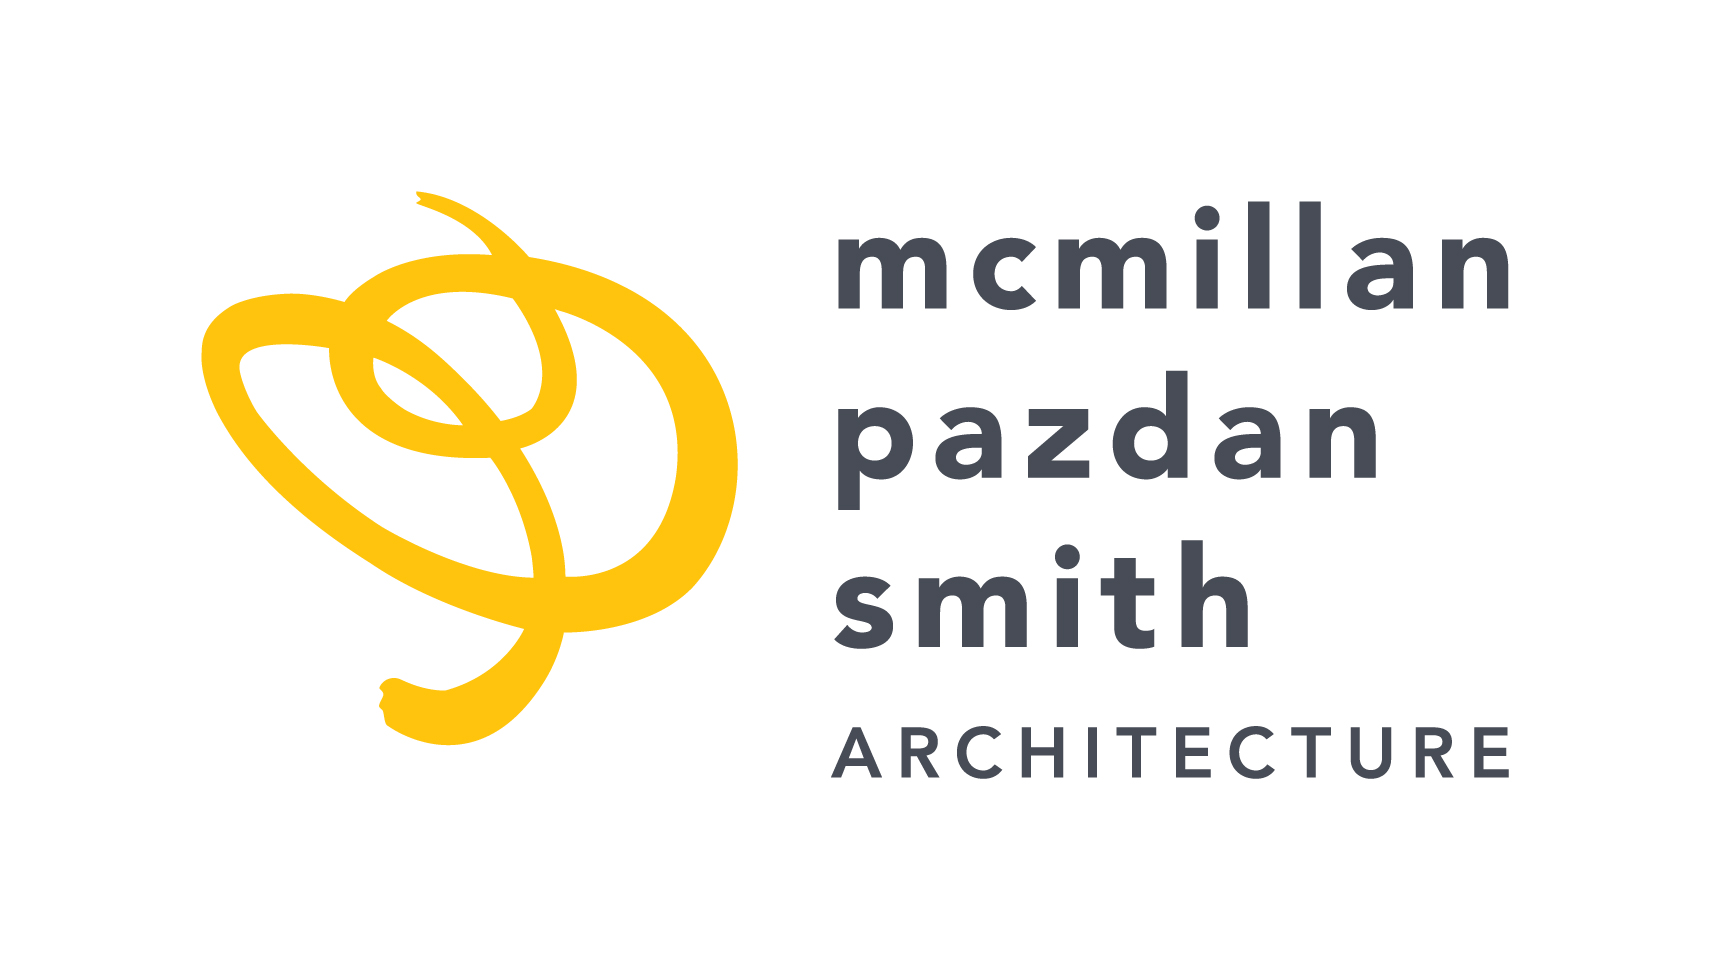 McMillan Pazdan Smith